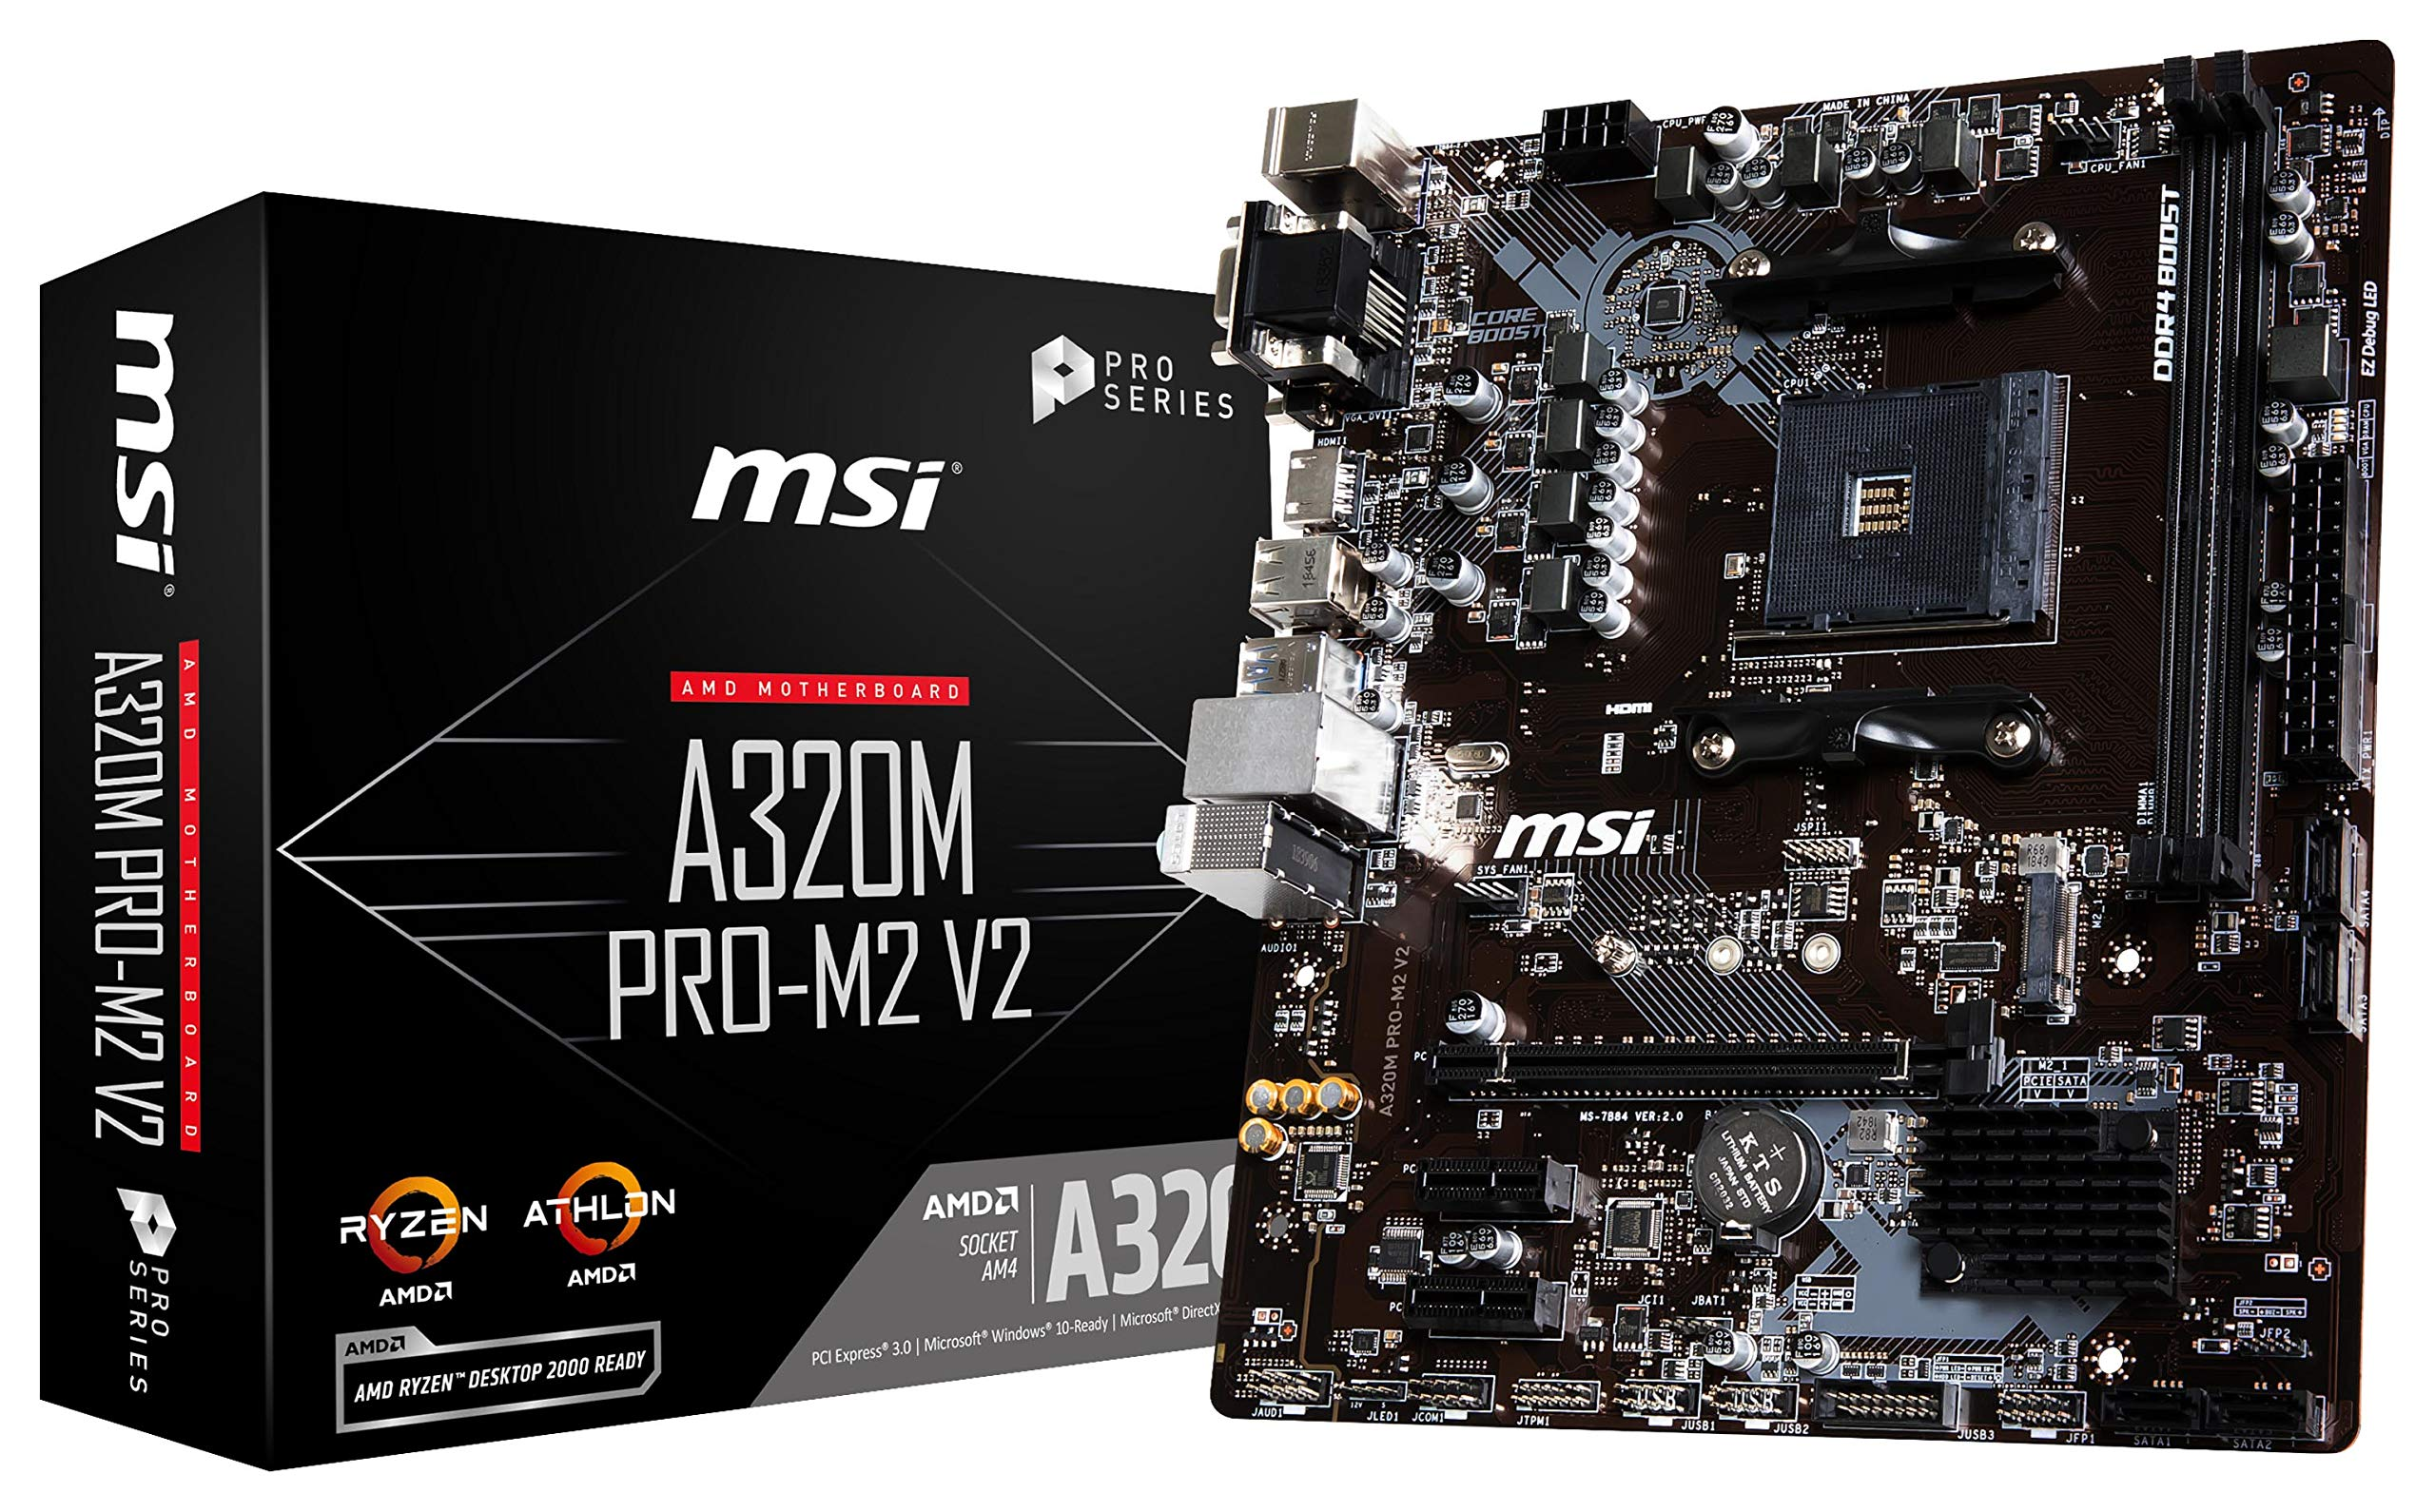 MSI ProSeries AMD A320 Ryzen 1st and 2ND Gen AM4 DDR4 HDMI DVI VGA M.2 USB 3 Micro-ATX Motherboard (A320M PRO-M2 V2) by MSI